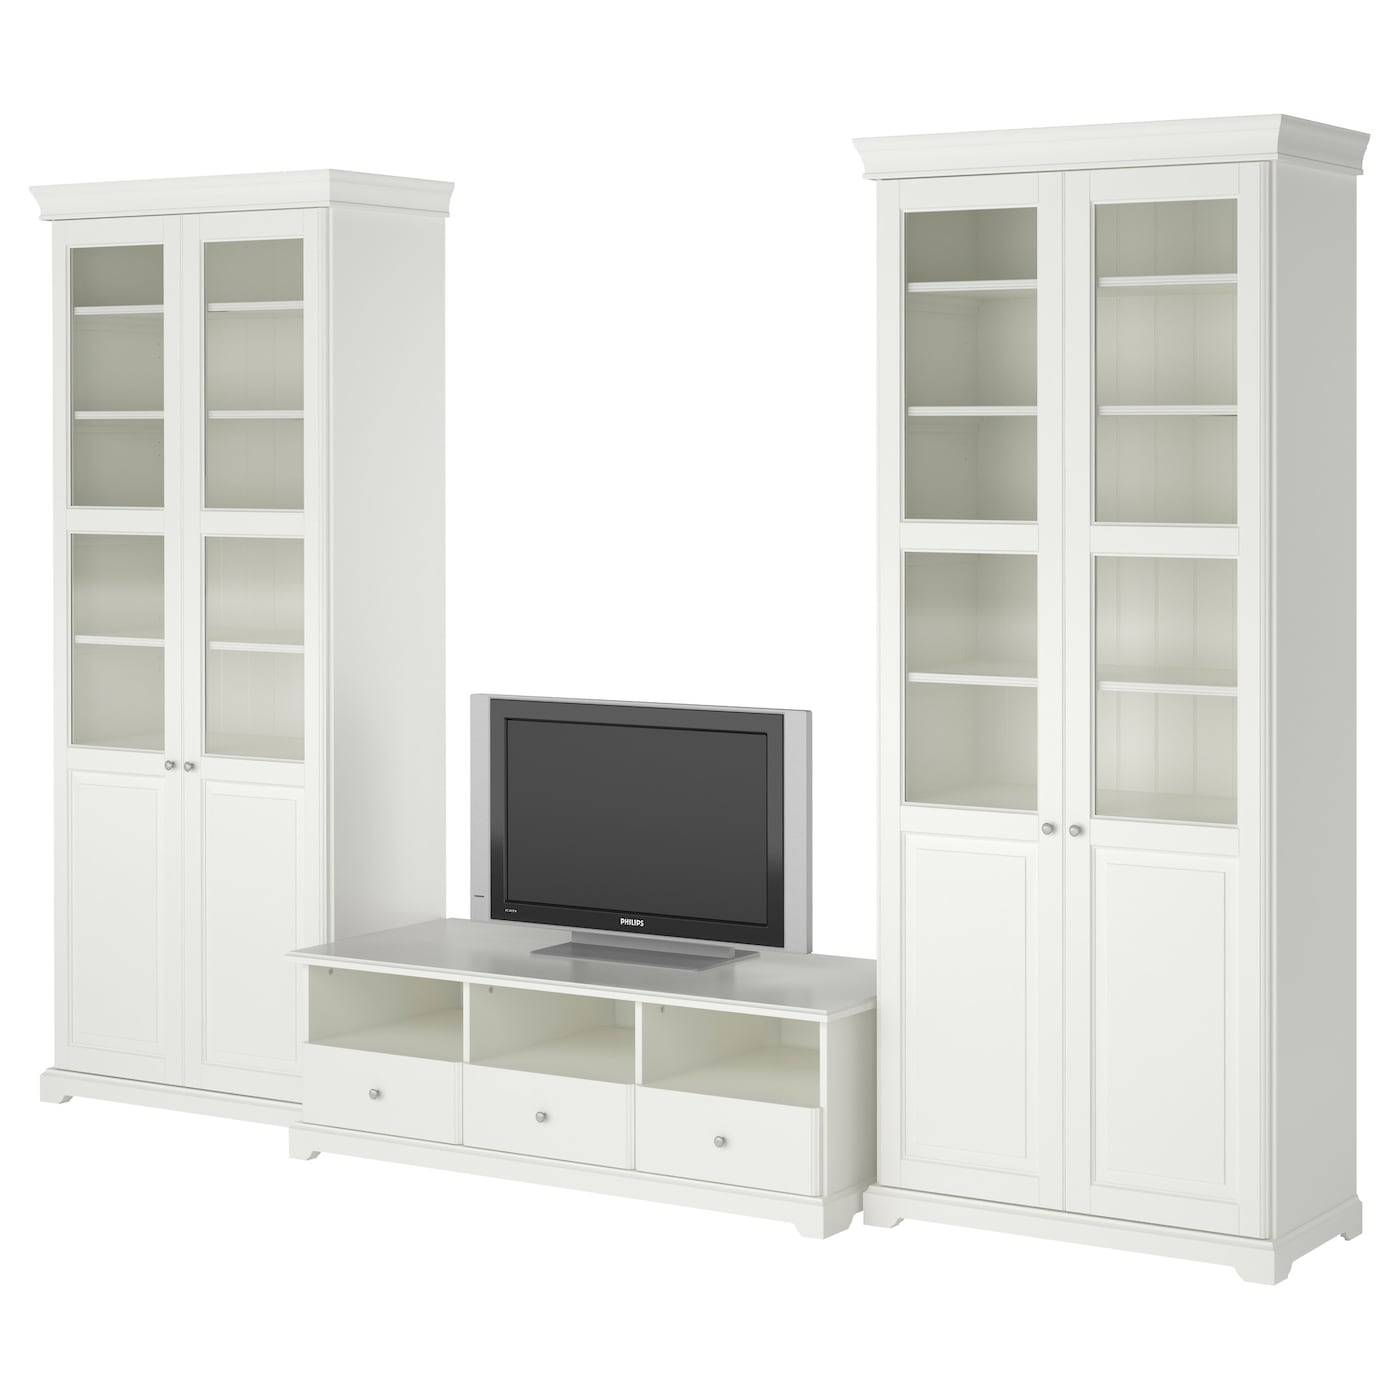 Liatorp tv storage combination white 331x214 cm ikea for Ikea hemnes wohnzimmerserie